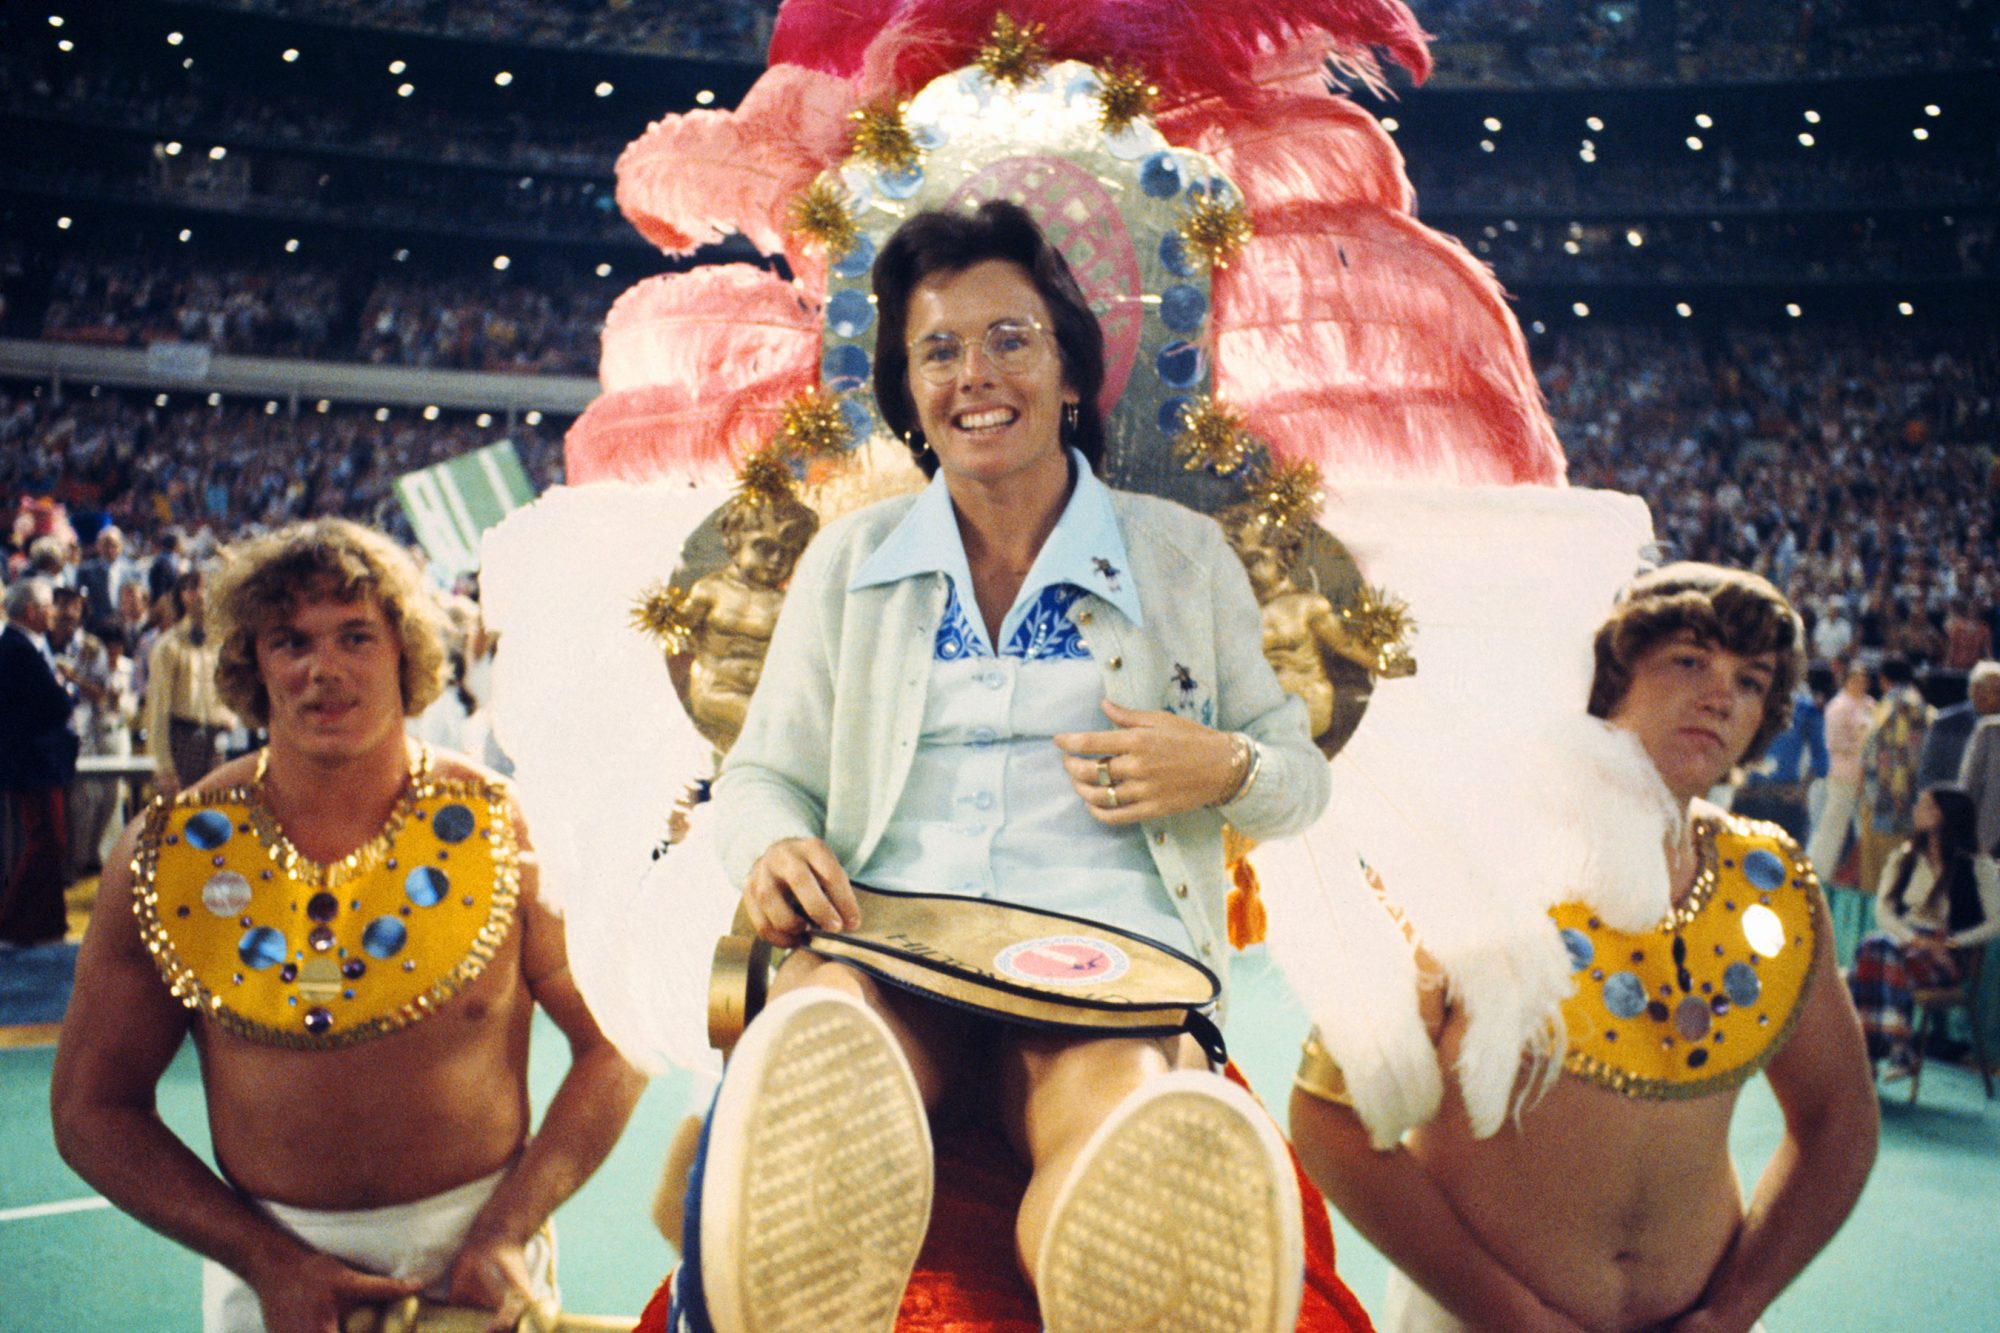 Tennis Player Billie Jean King Being Carried on Palanquin